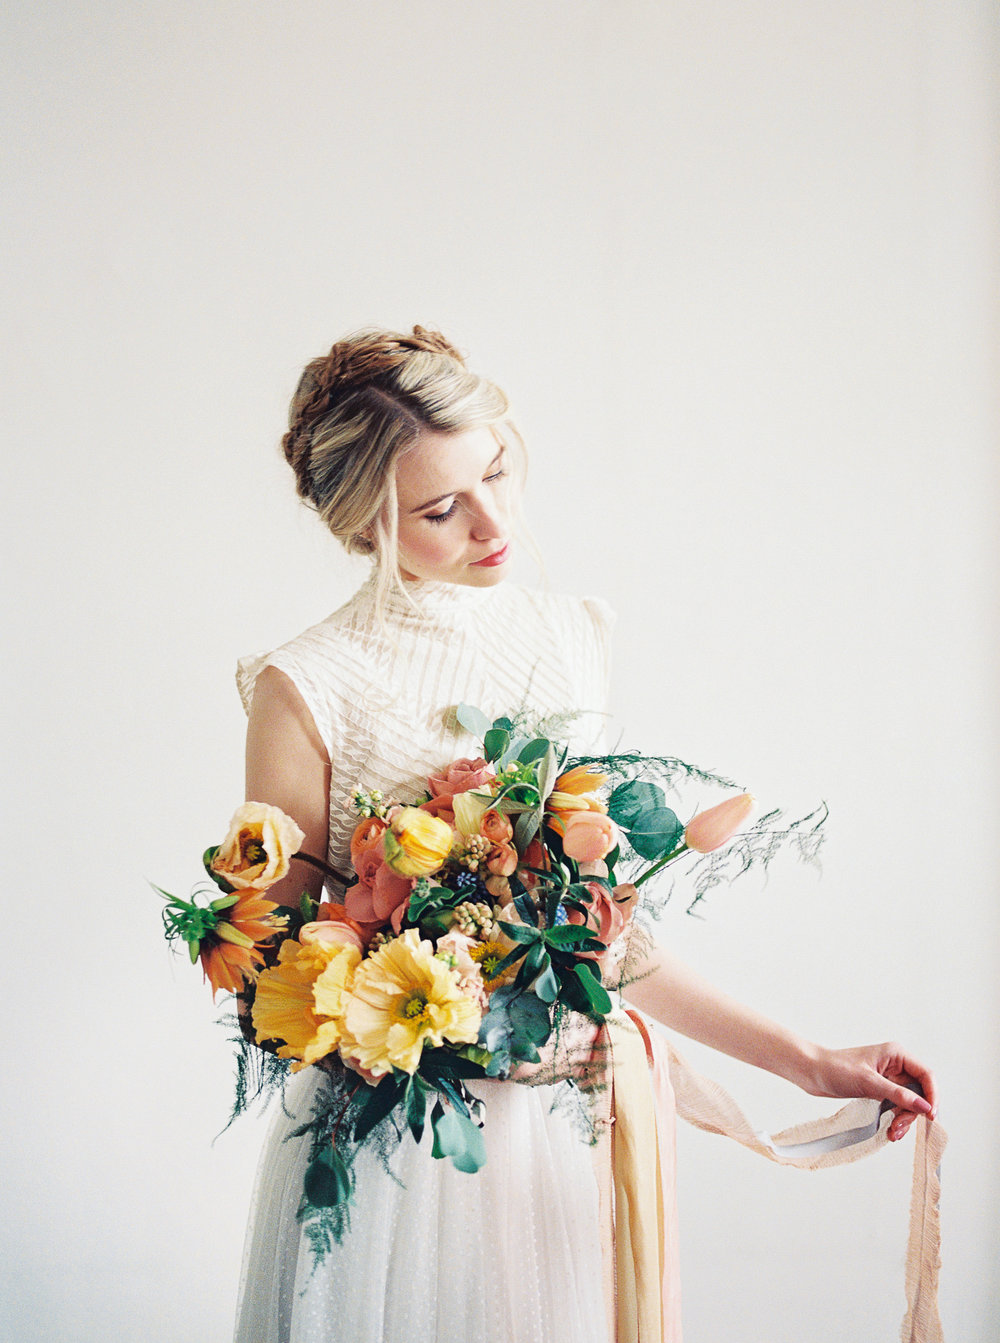 Elegant Nurnberg Germany Wedding Inspiration by Tanja Kibogo - fine art film destination wedding photographer14.JPG